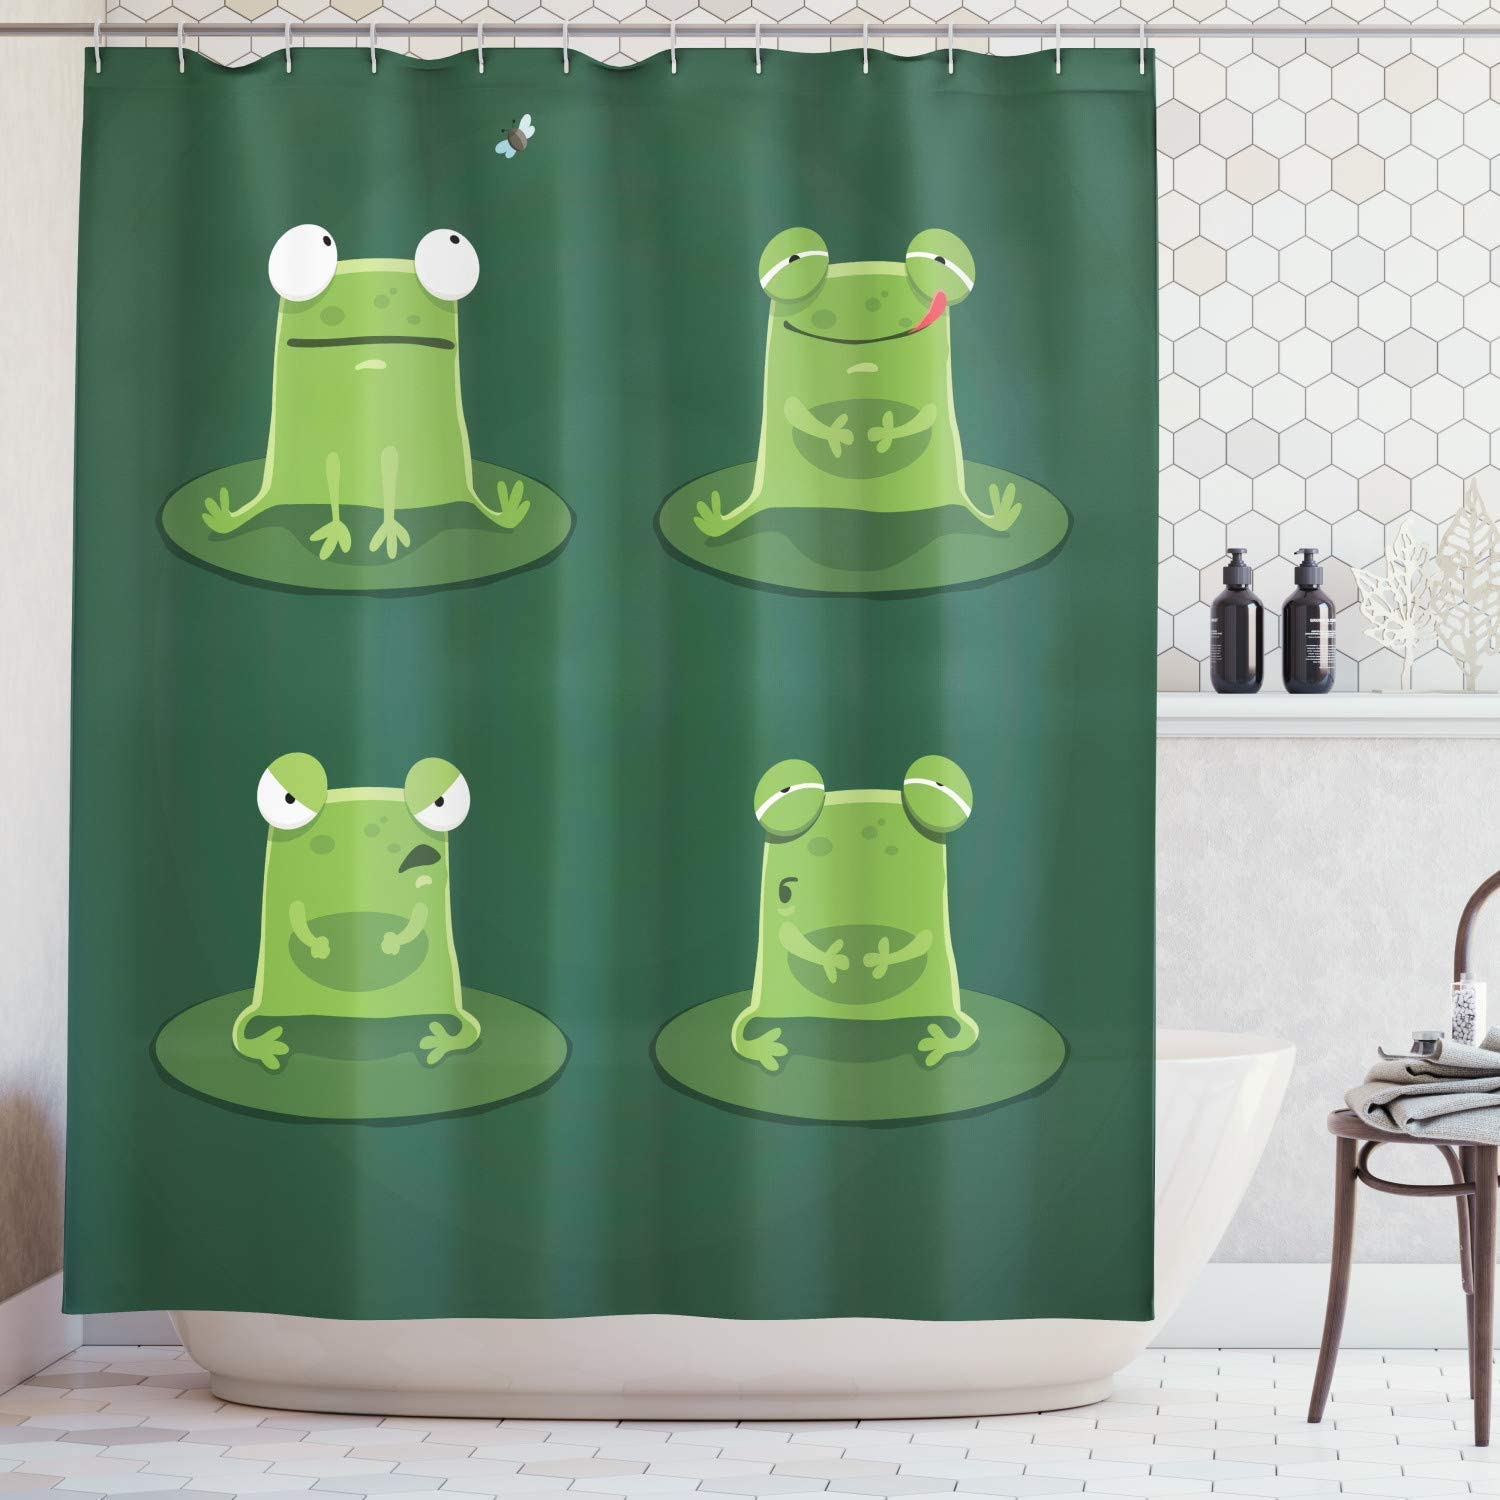 Funny Decor Shower Curtain Set,Funny Muzzy Frog on Lily Pad in Pond Hunting Tasty Fly Expressions Cartoon Animal Theme,Bathroom Decor Set with Hooks, 72 Inches Extra long,Machine Washable,Bottle Green